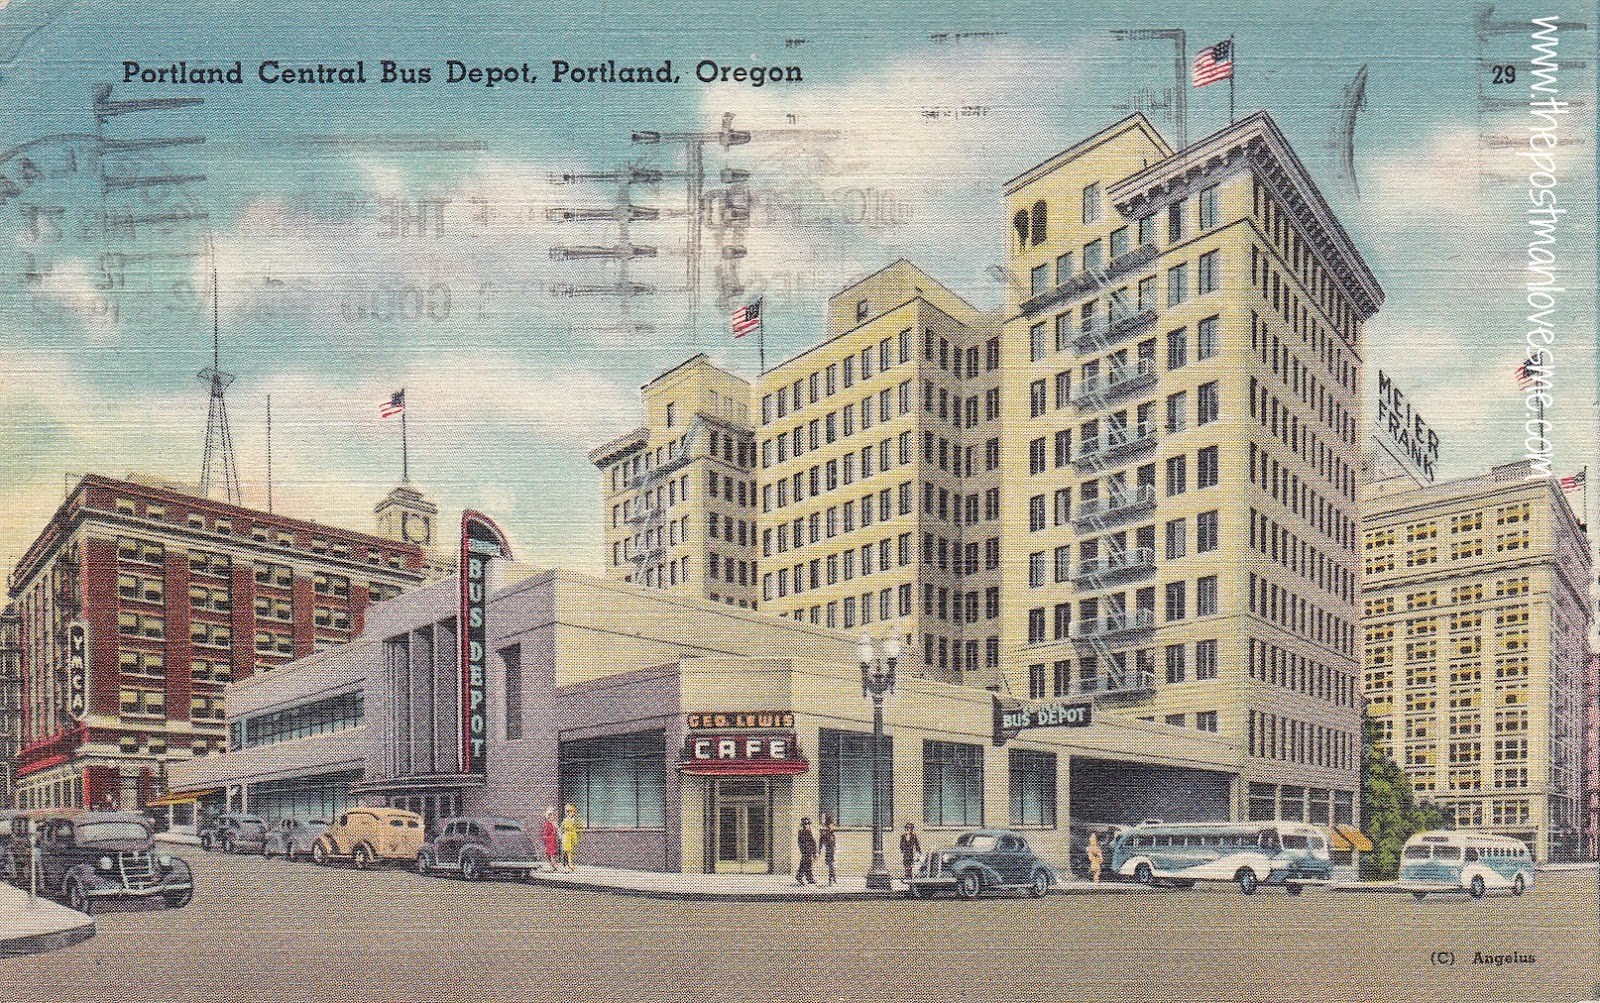 Portland Central Bus Depot, Portland, Oregon Vintage Postcard